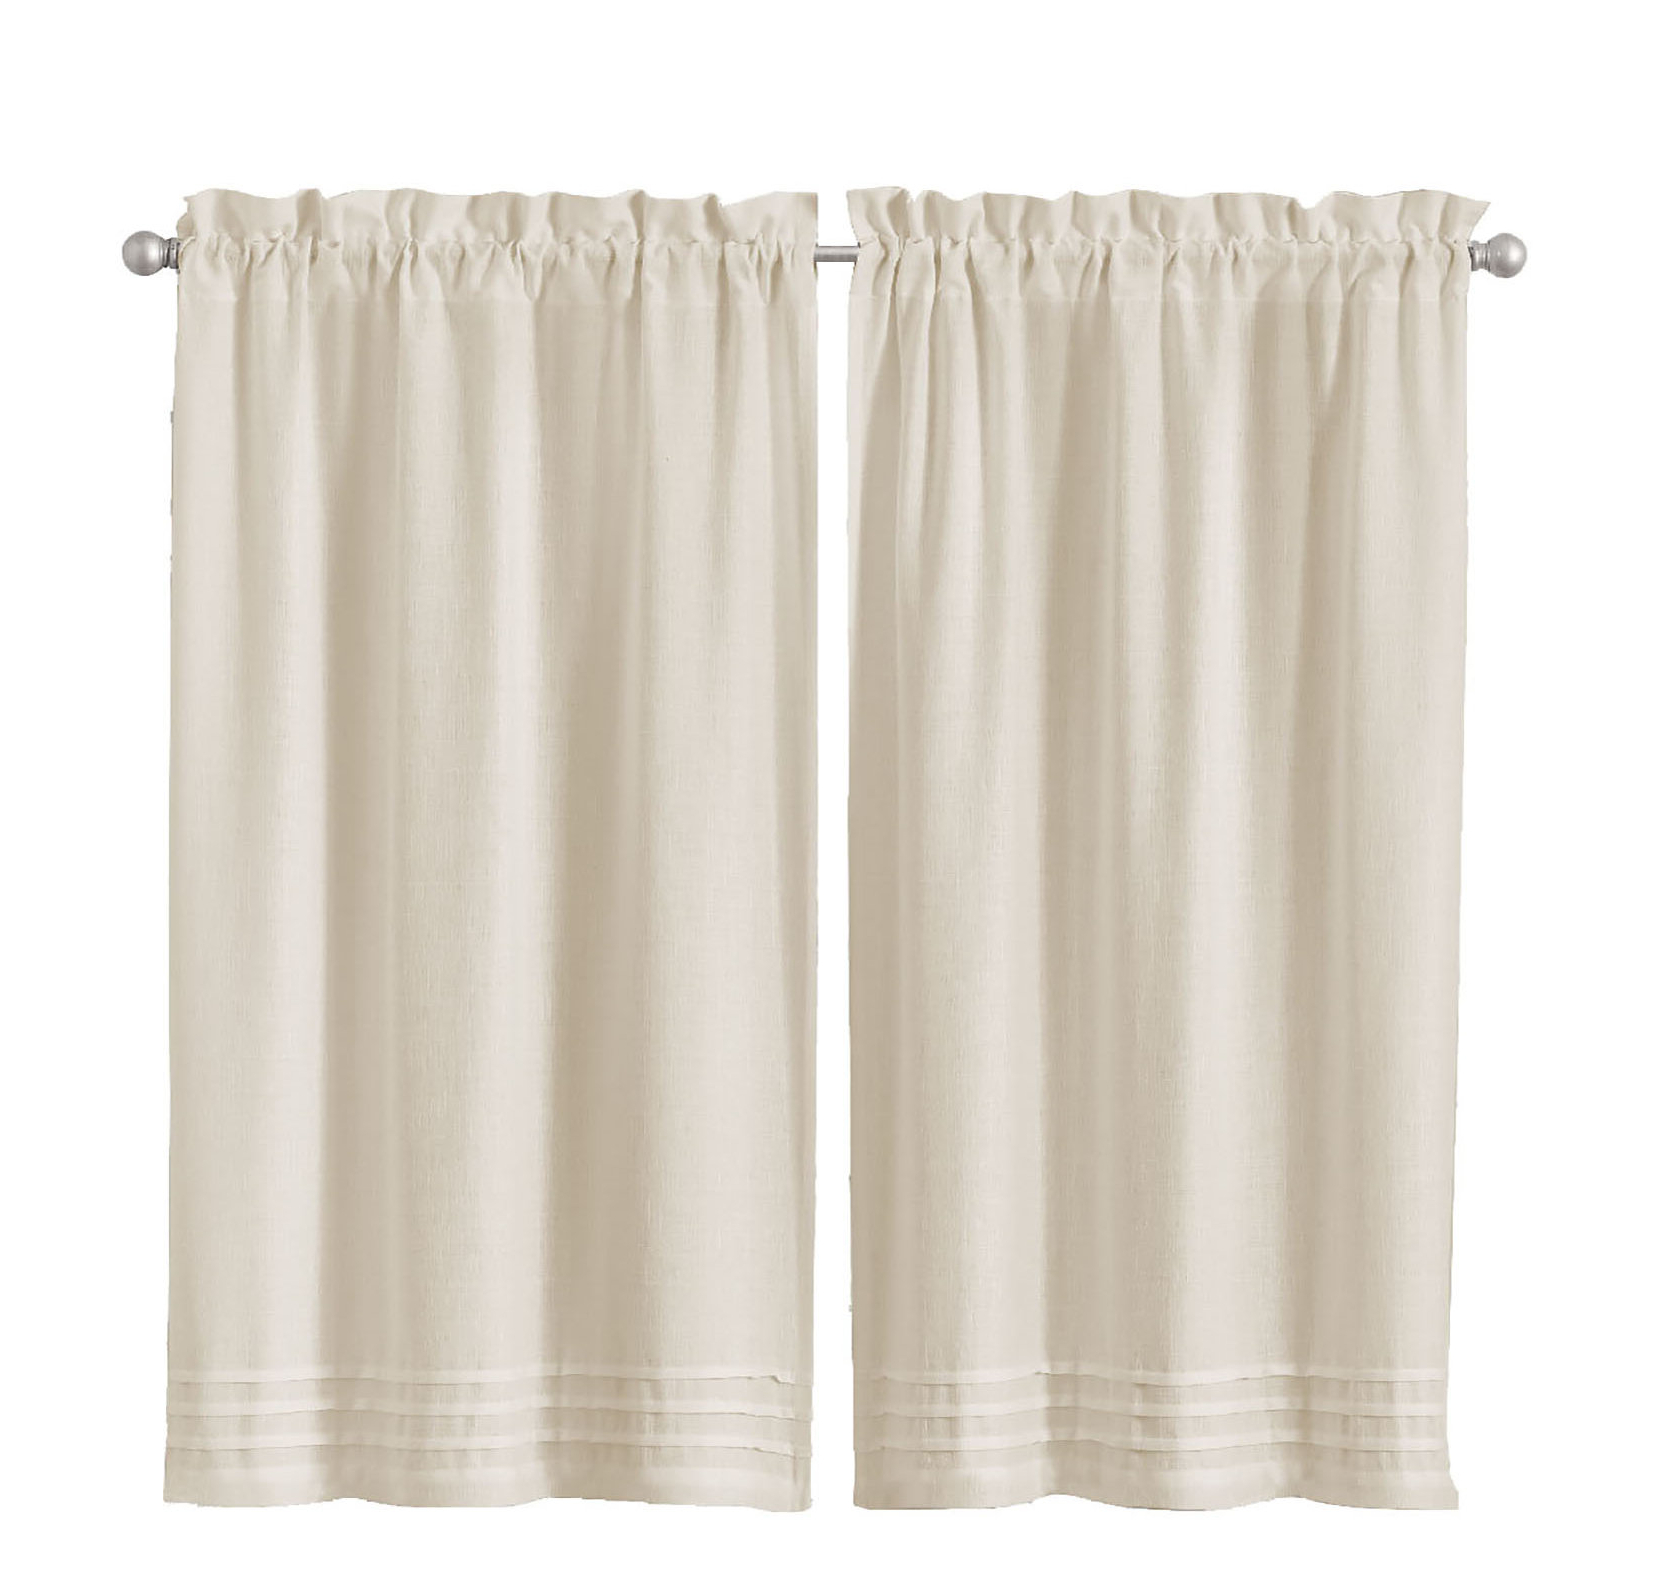 Aon Window Pleated Cafe Curtain For Well Known Luxury Collection Kitchen Tiers (View 17 of 20)